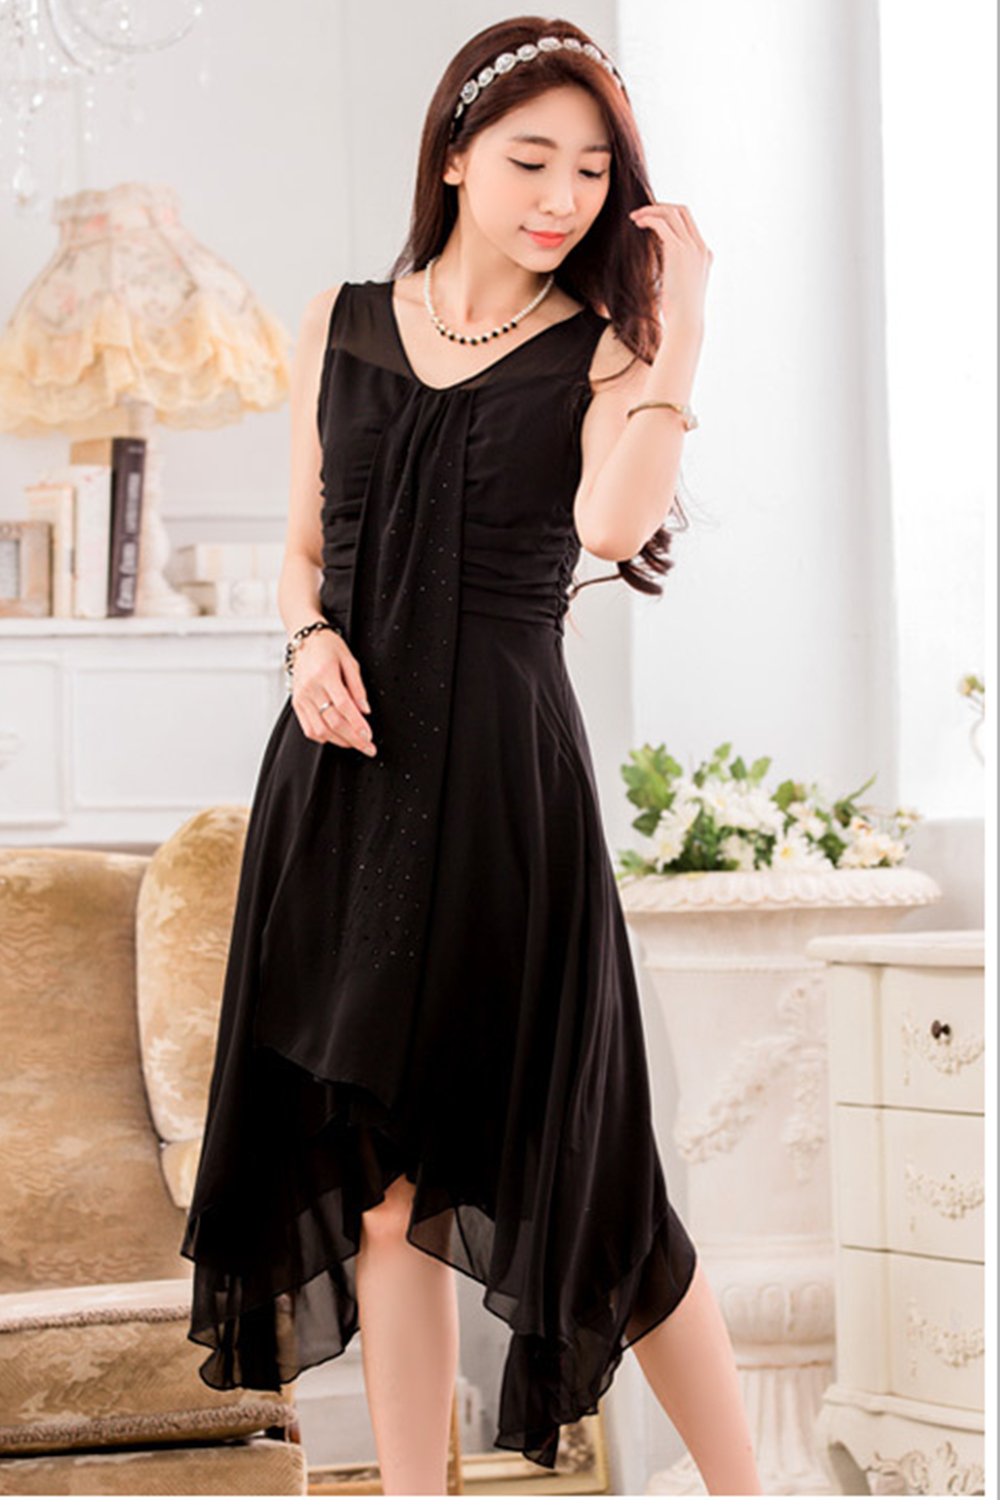 Black dress match with what colour - Prev